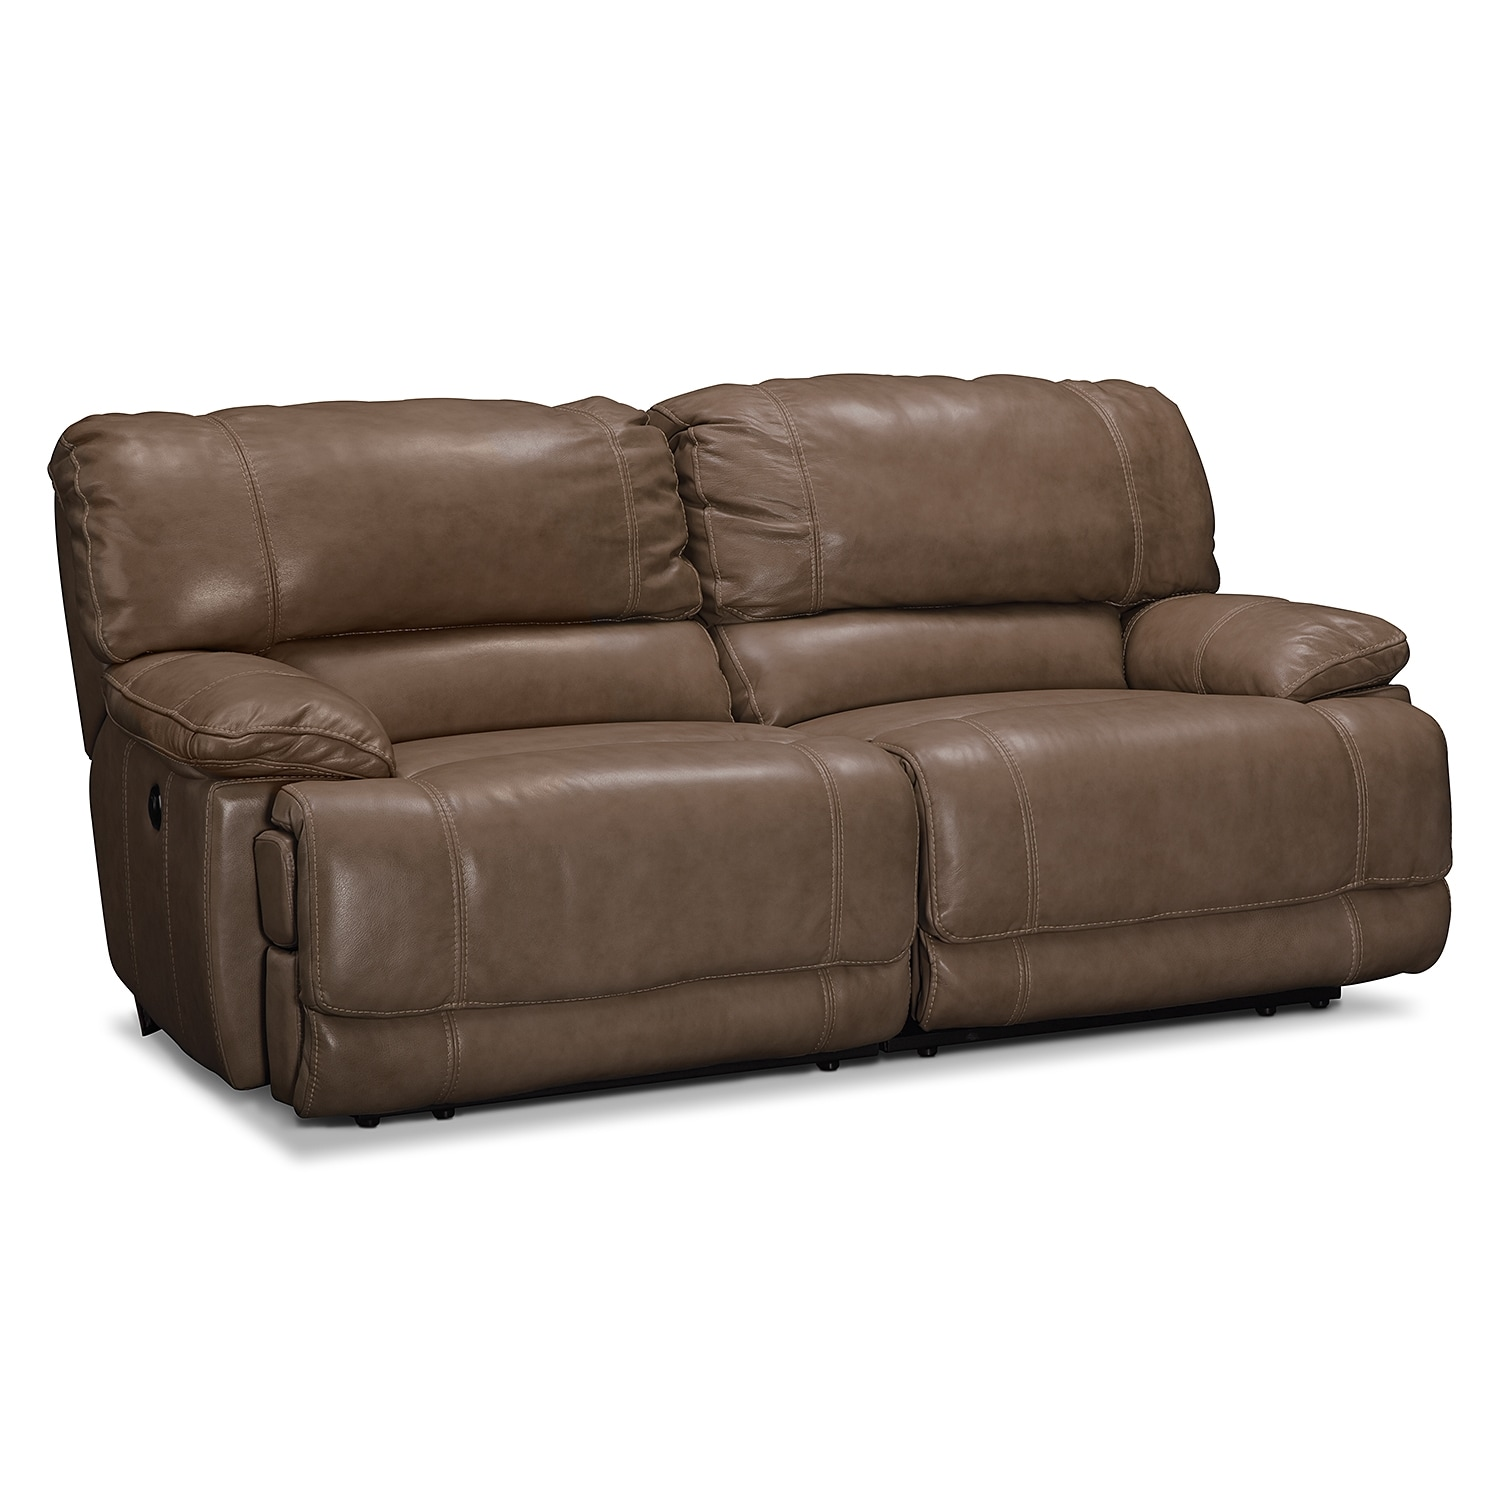 st malo power reclining sofa taupe value city furniture. Black Bedroom Furniture Sets. Home Design Ideas